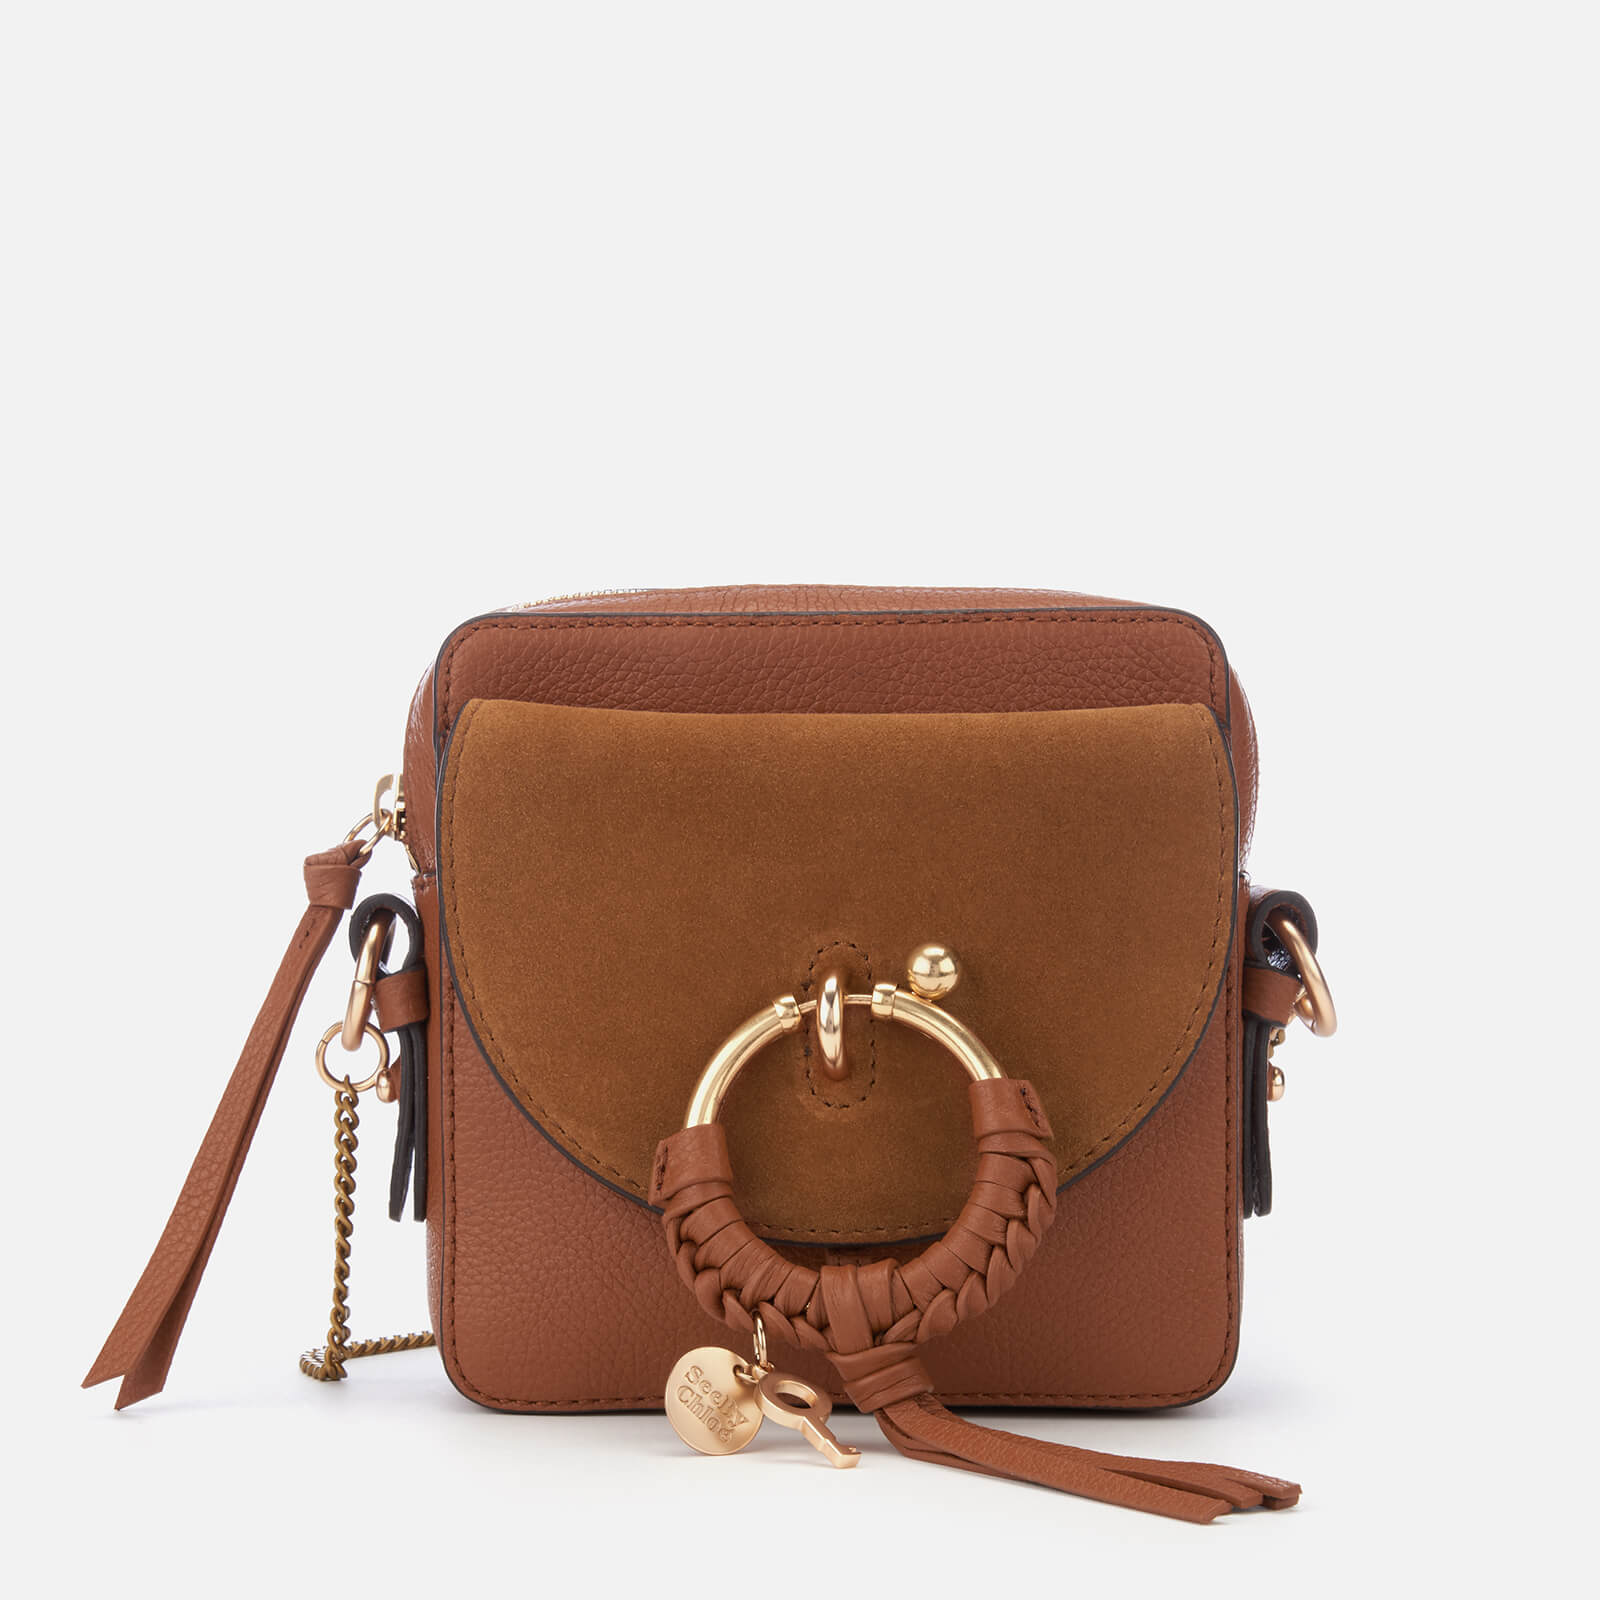 b382fec0aaf1 See By Chloé Women s Joan Small Cross Body Bag - Caramello - Free UK  Delivery over £50